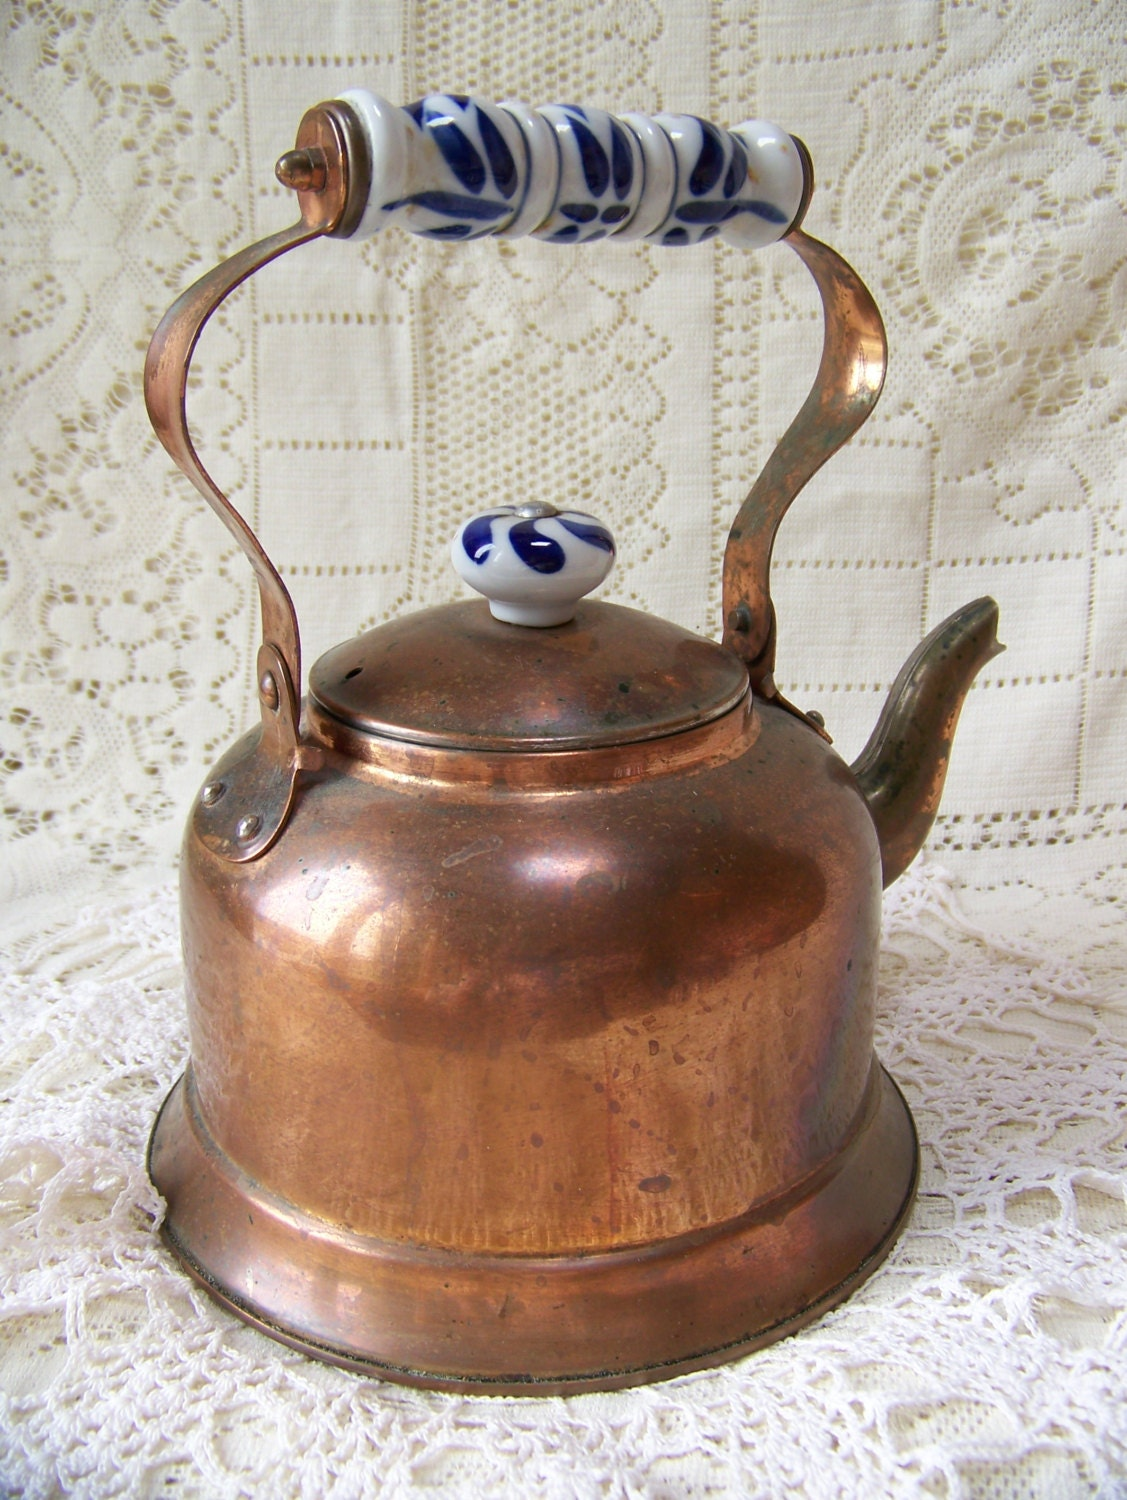 Vintage Copper Tea Kettle With Blue And White Porcelain Handle